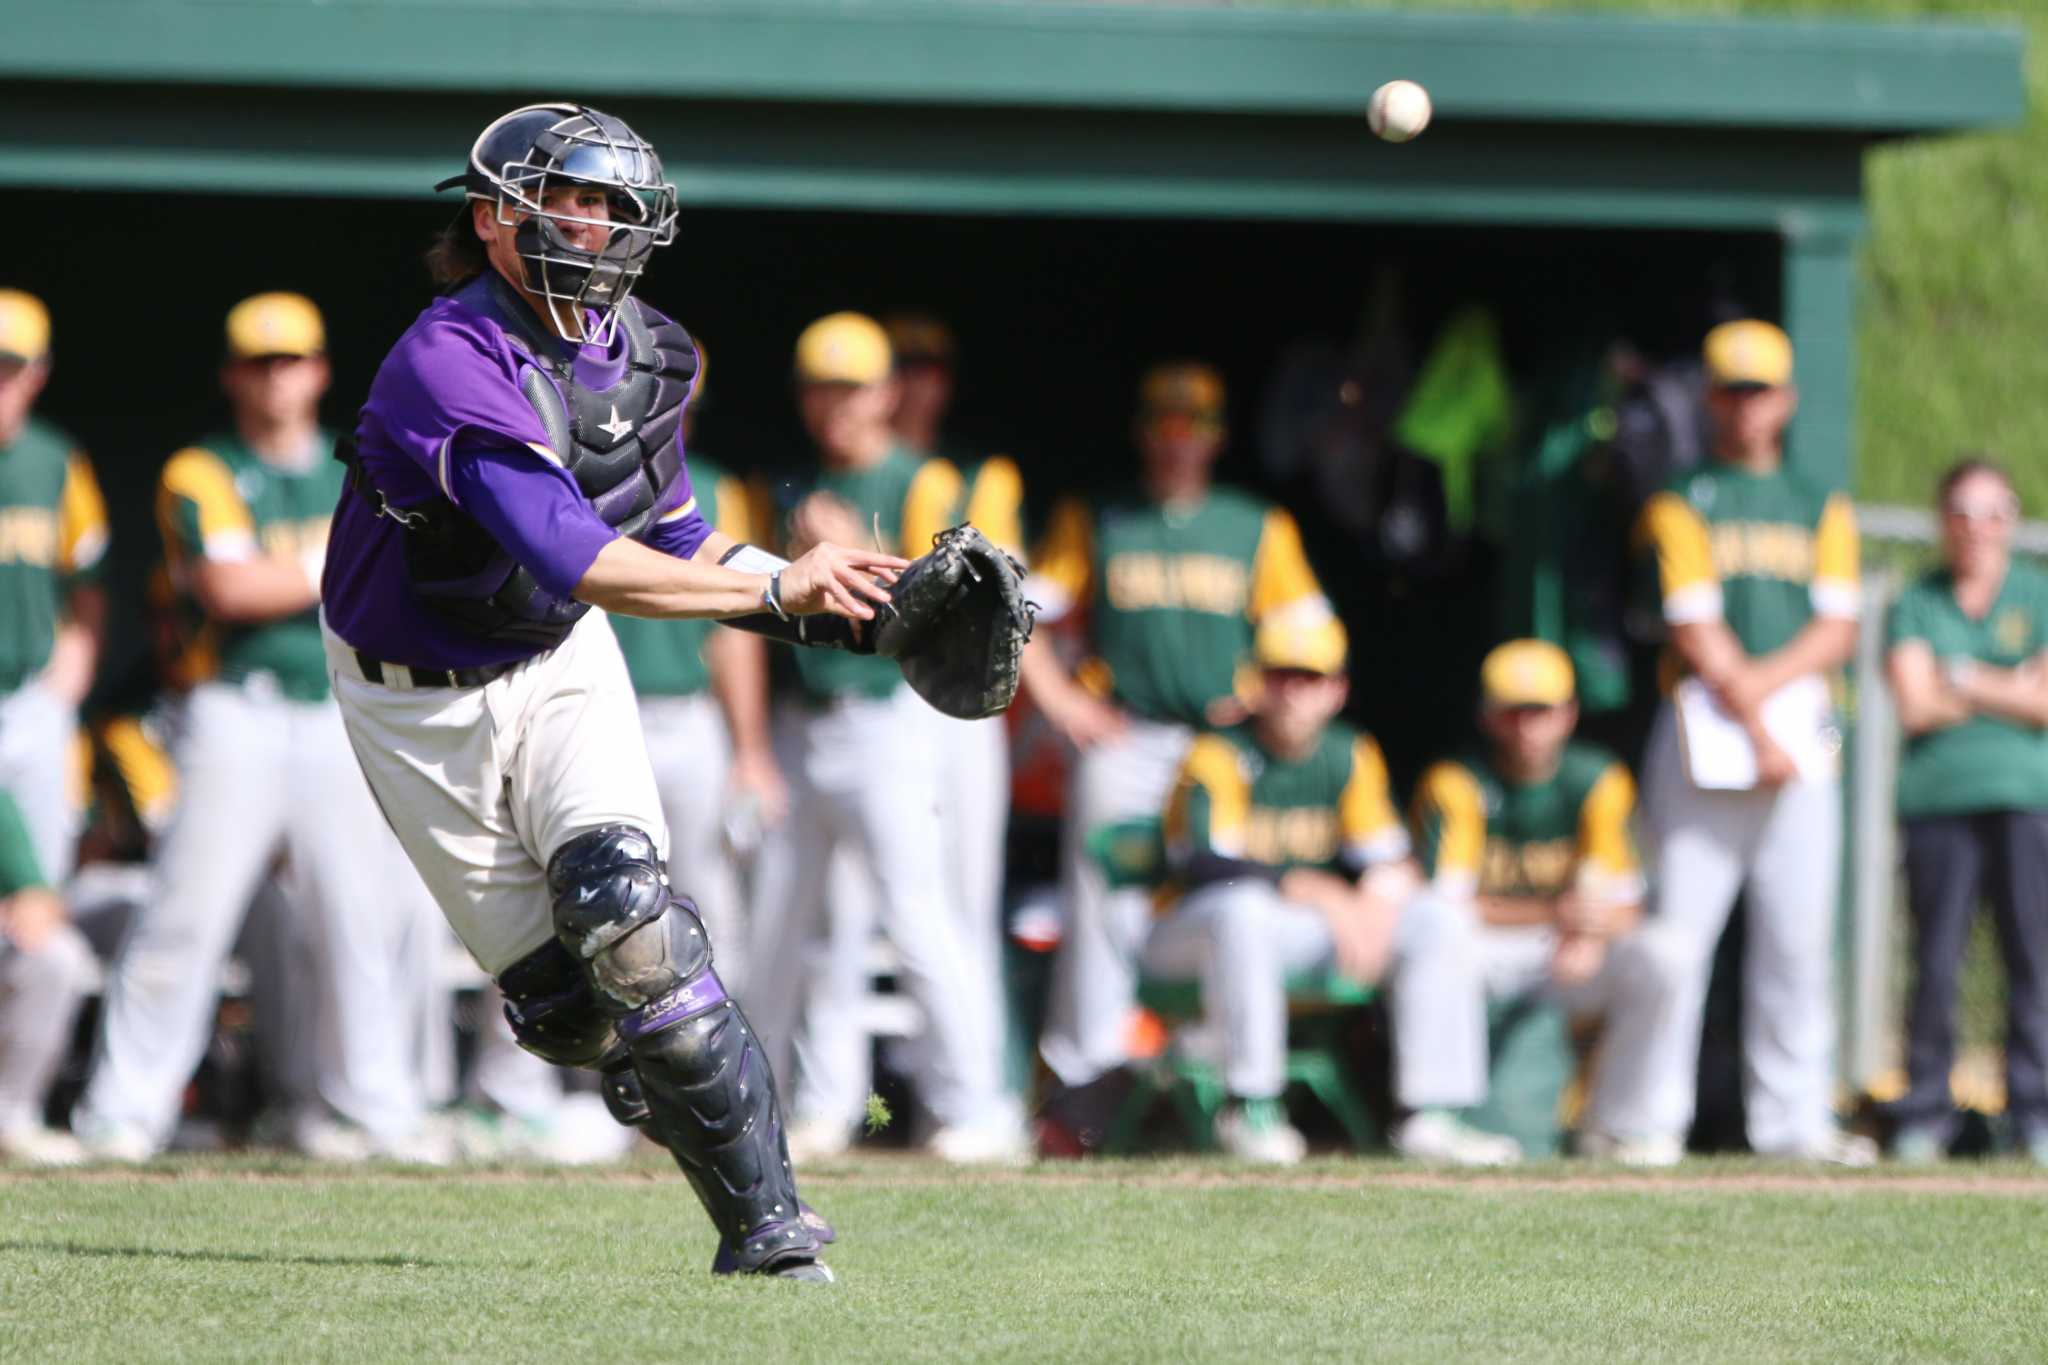 SF State Gator catcher Carter Gambrell (11) throws the ball toward first base for an out during the top of the sixth inning of their 9-4 loss to Cal Poly Pomona at Maloney Field on Sunday, Feb. 28, 2016. (George Morin / Xpress)